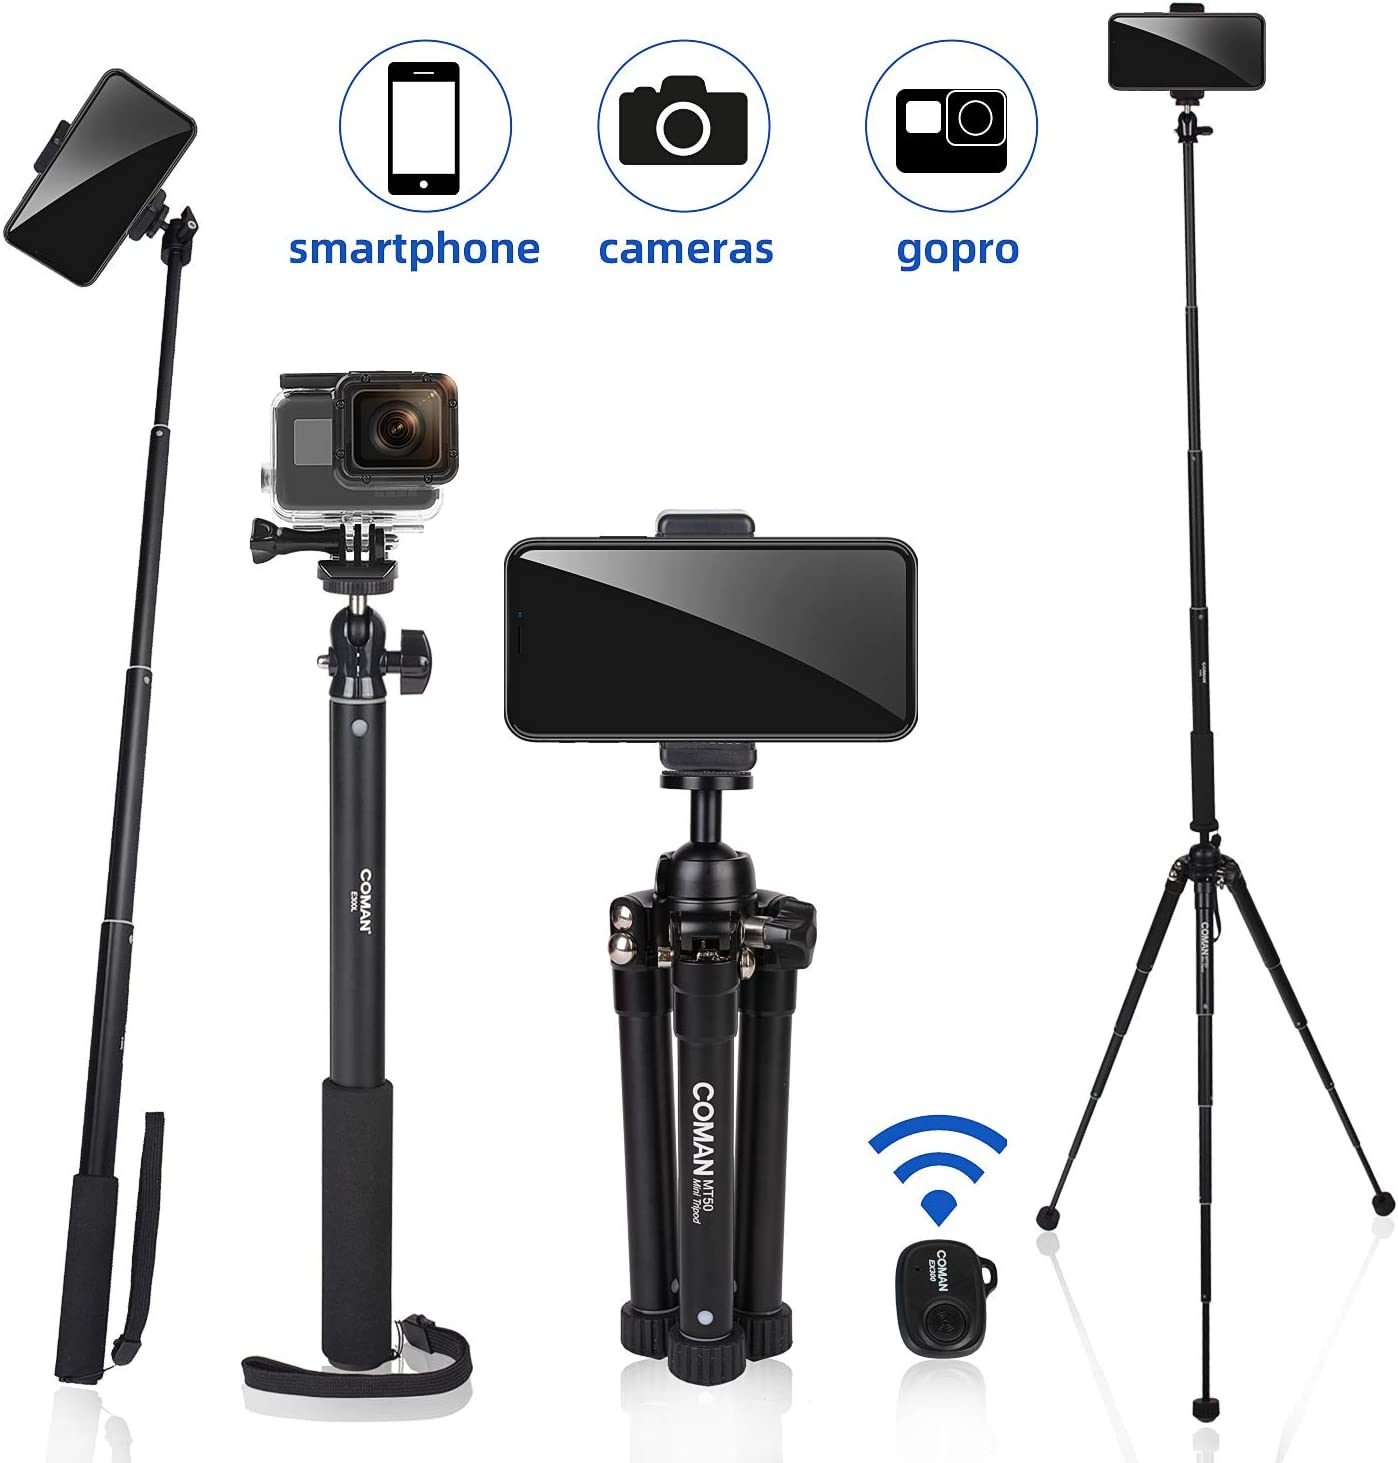 "63"" Tripod, COMAN Premium Phone Tripod, Portable All-in-One Professional Camera Tripod, Lightweight Aluminum, Bluetooth Remote for iPhone & Android Devices, Non Skid Tripod Feet: Camera & Photo"